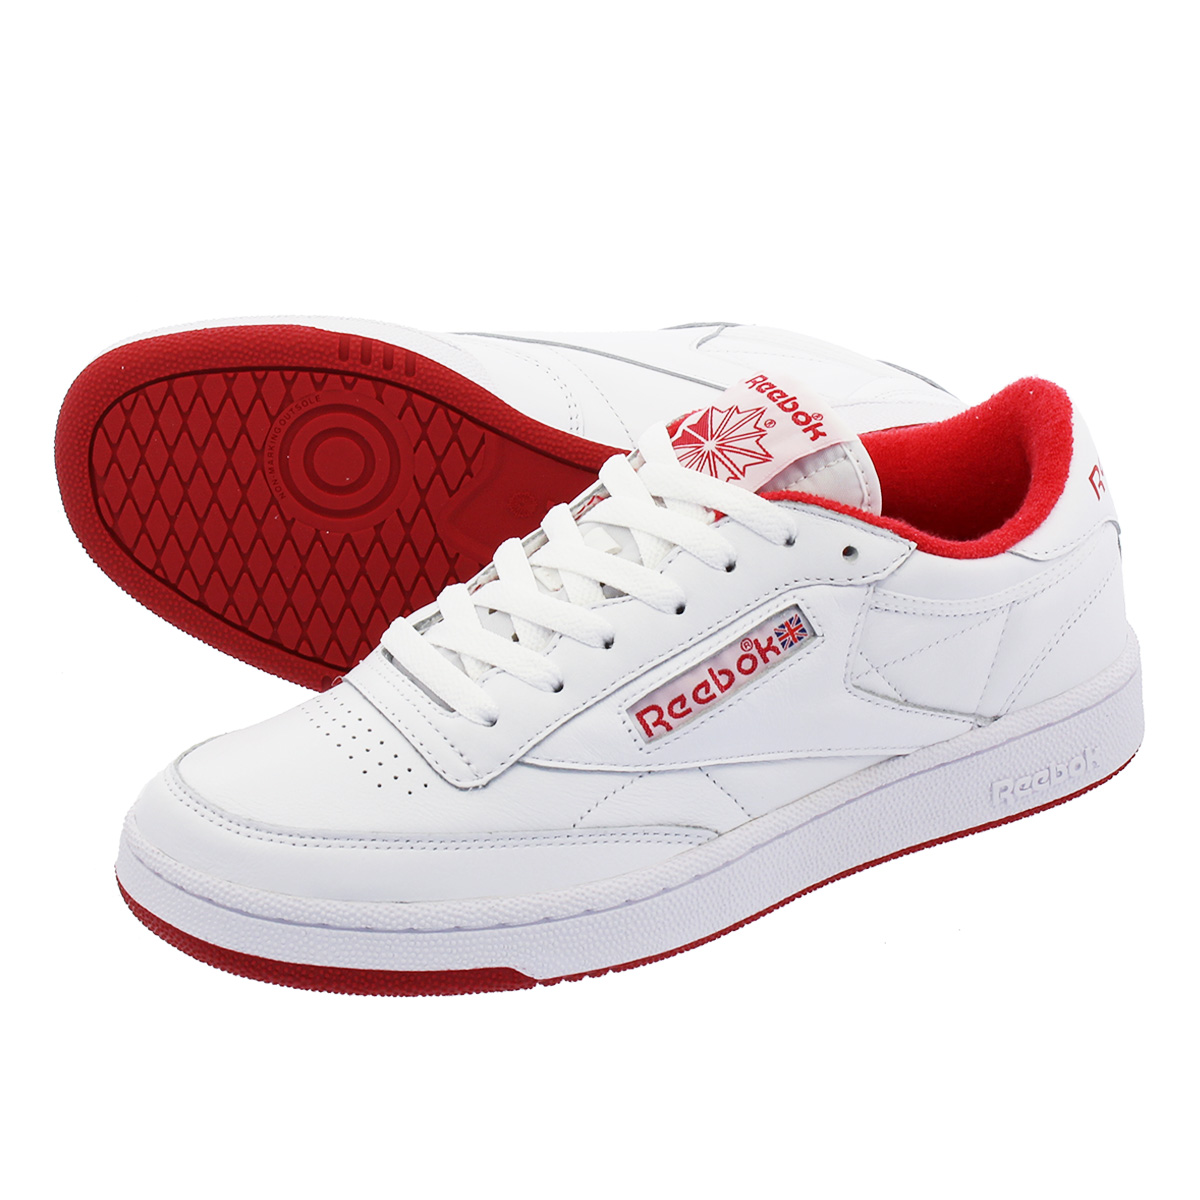 Reebok CLUB C 85 ARCHIVE リーボック クラブ C 85 ARCHIVE WHITE/EXCELLENT RED cn3711